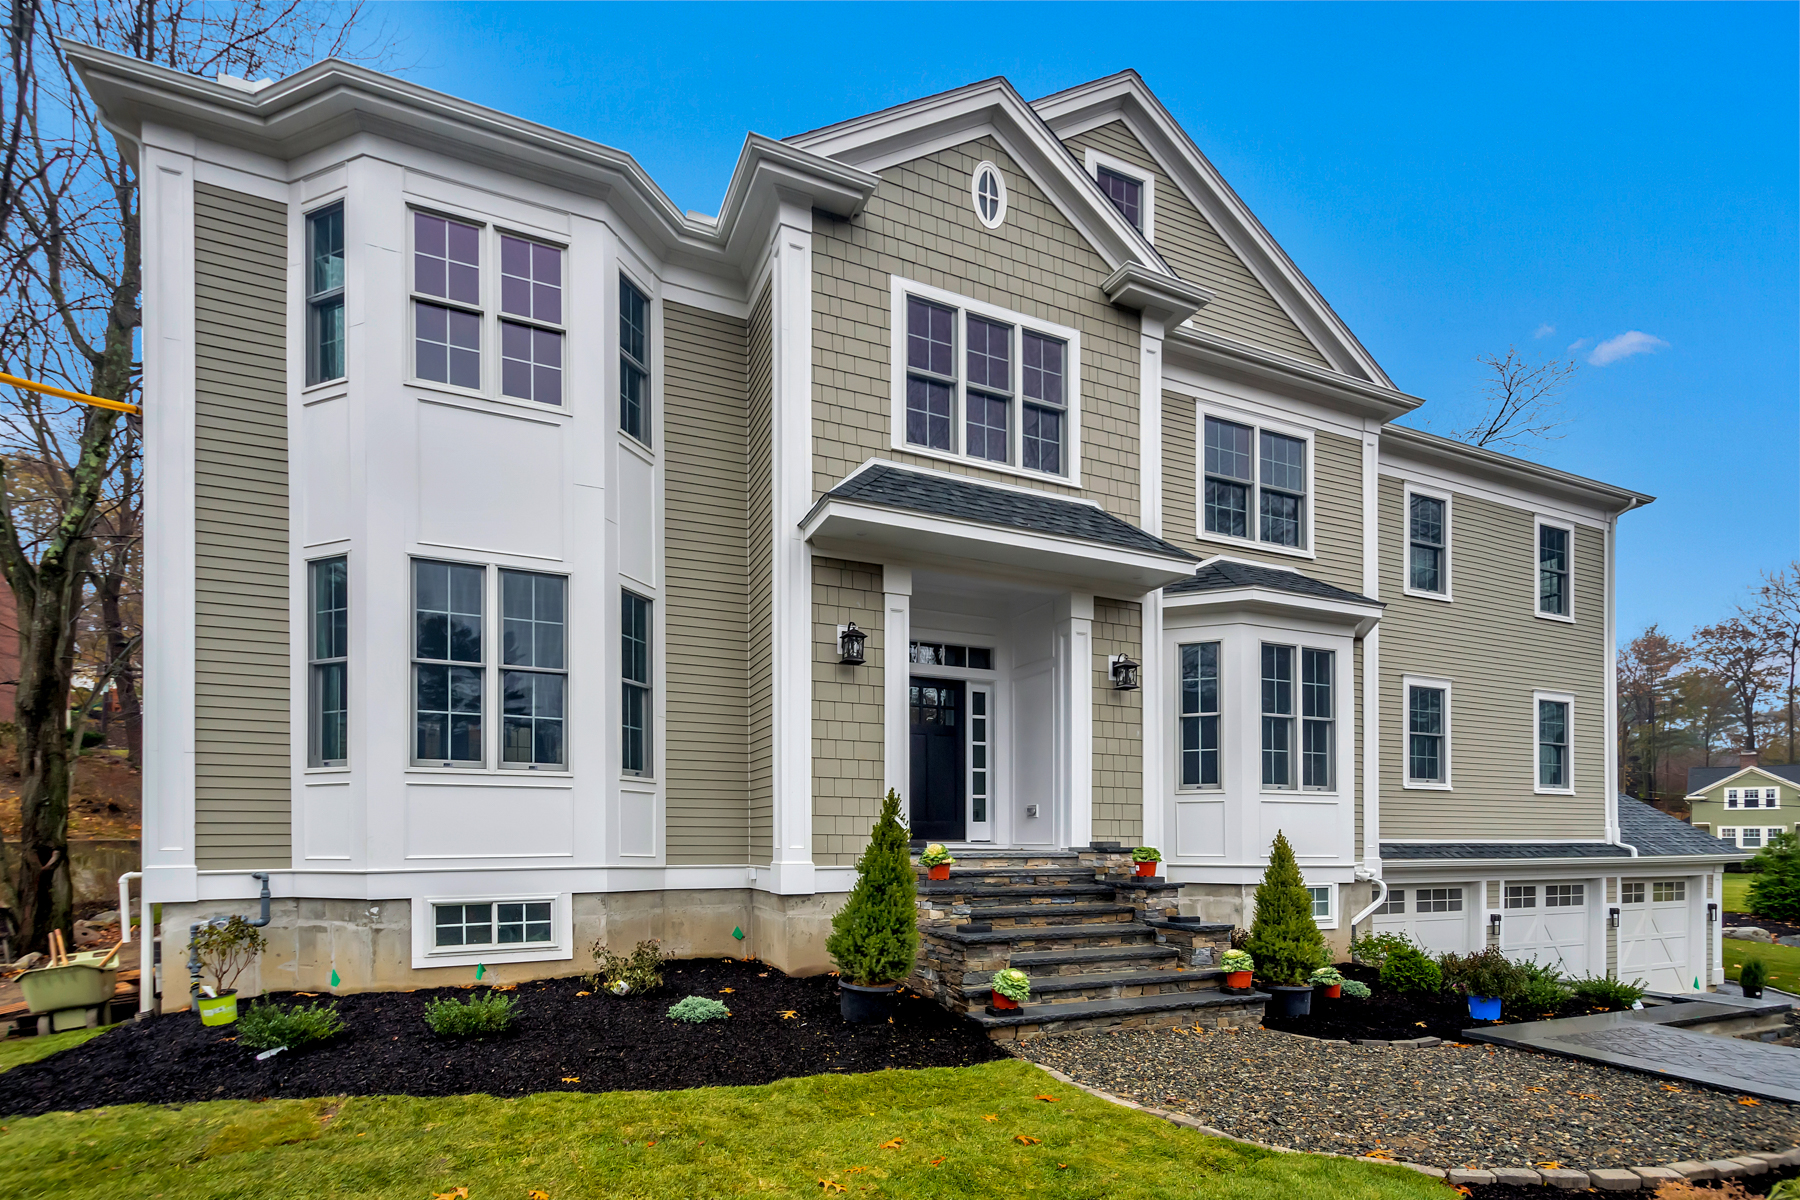 Single Family Homes for Sale at New Construction Luxury 6 Bed Home in Winchester 5 Dean Road Winchester, Massachusetts 01890 United States